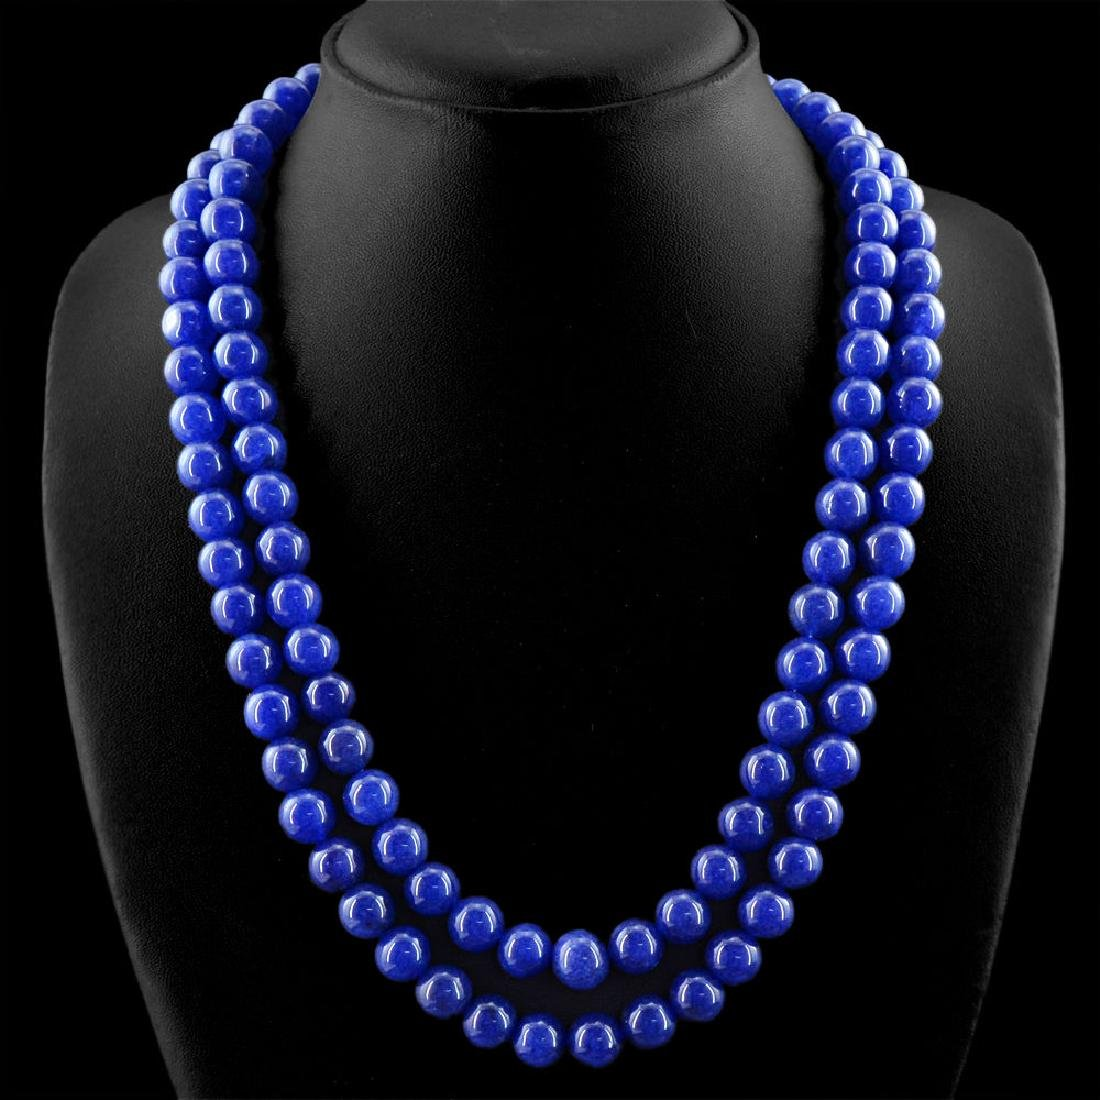 EARTH-MINED-2-LINE-RICH-BLUE-SAPPHIRE-ROUND-SHAPE-BEADS - 2